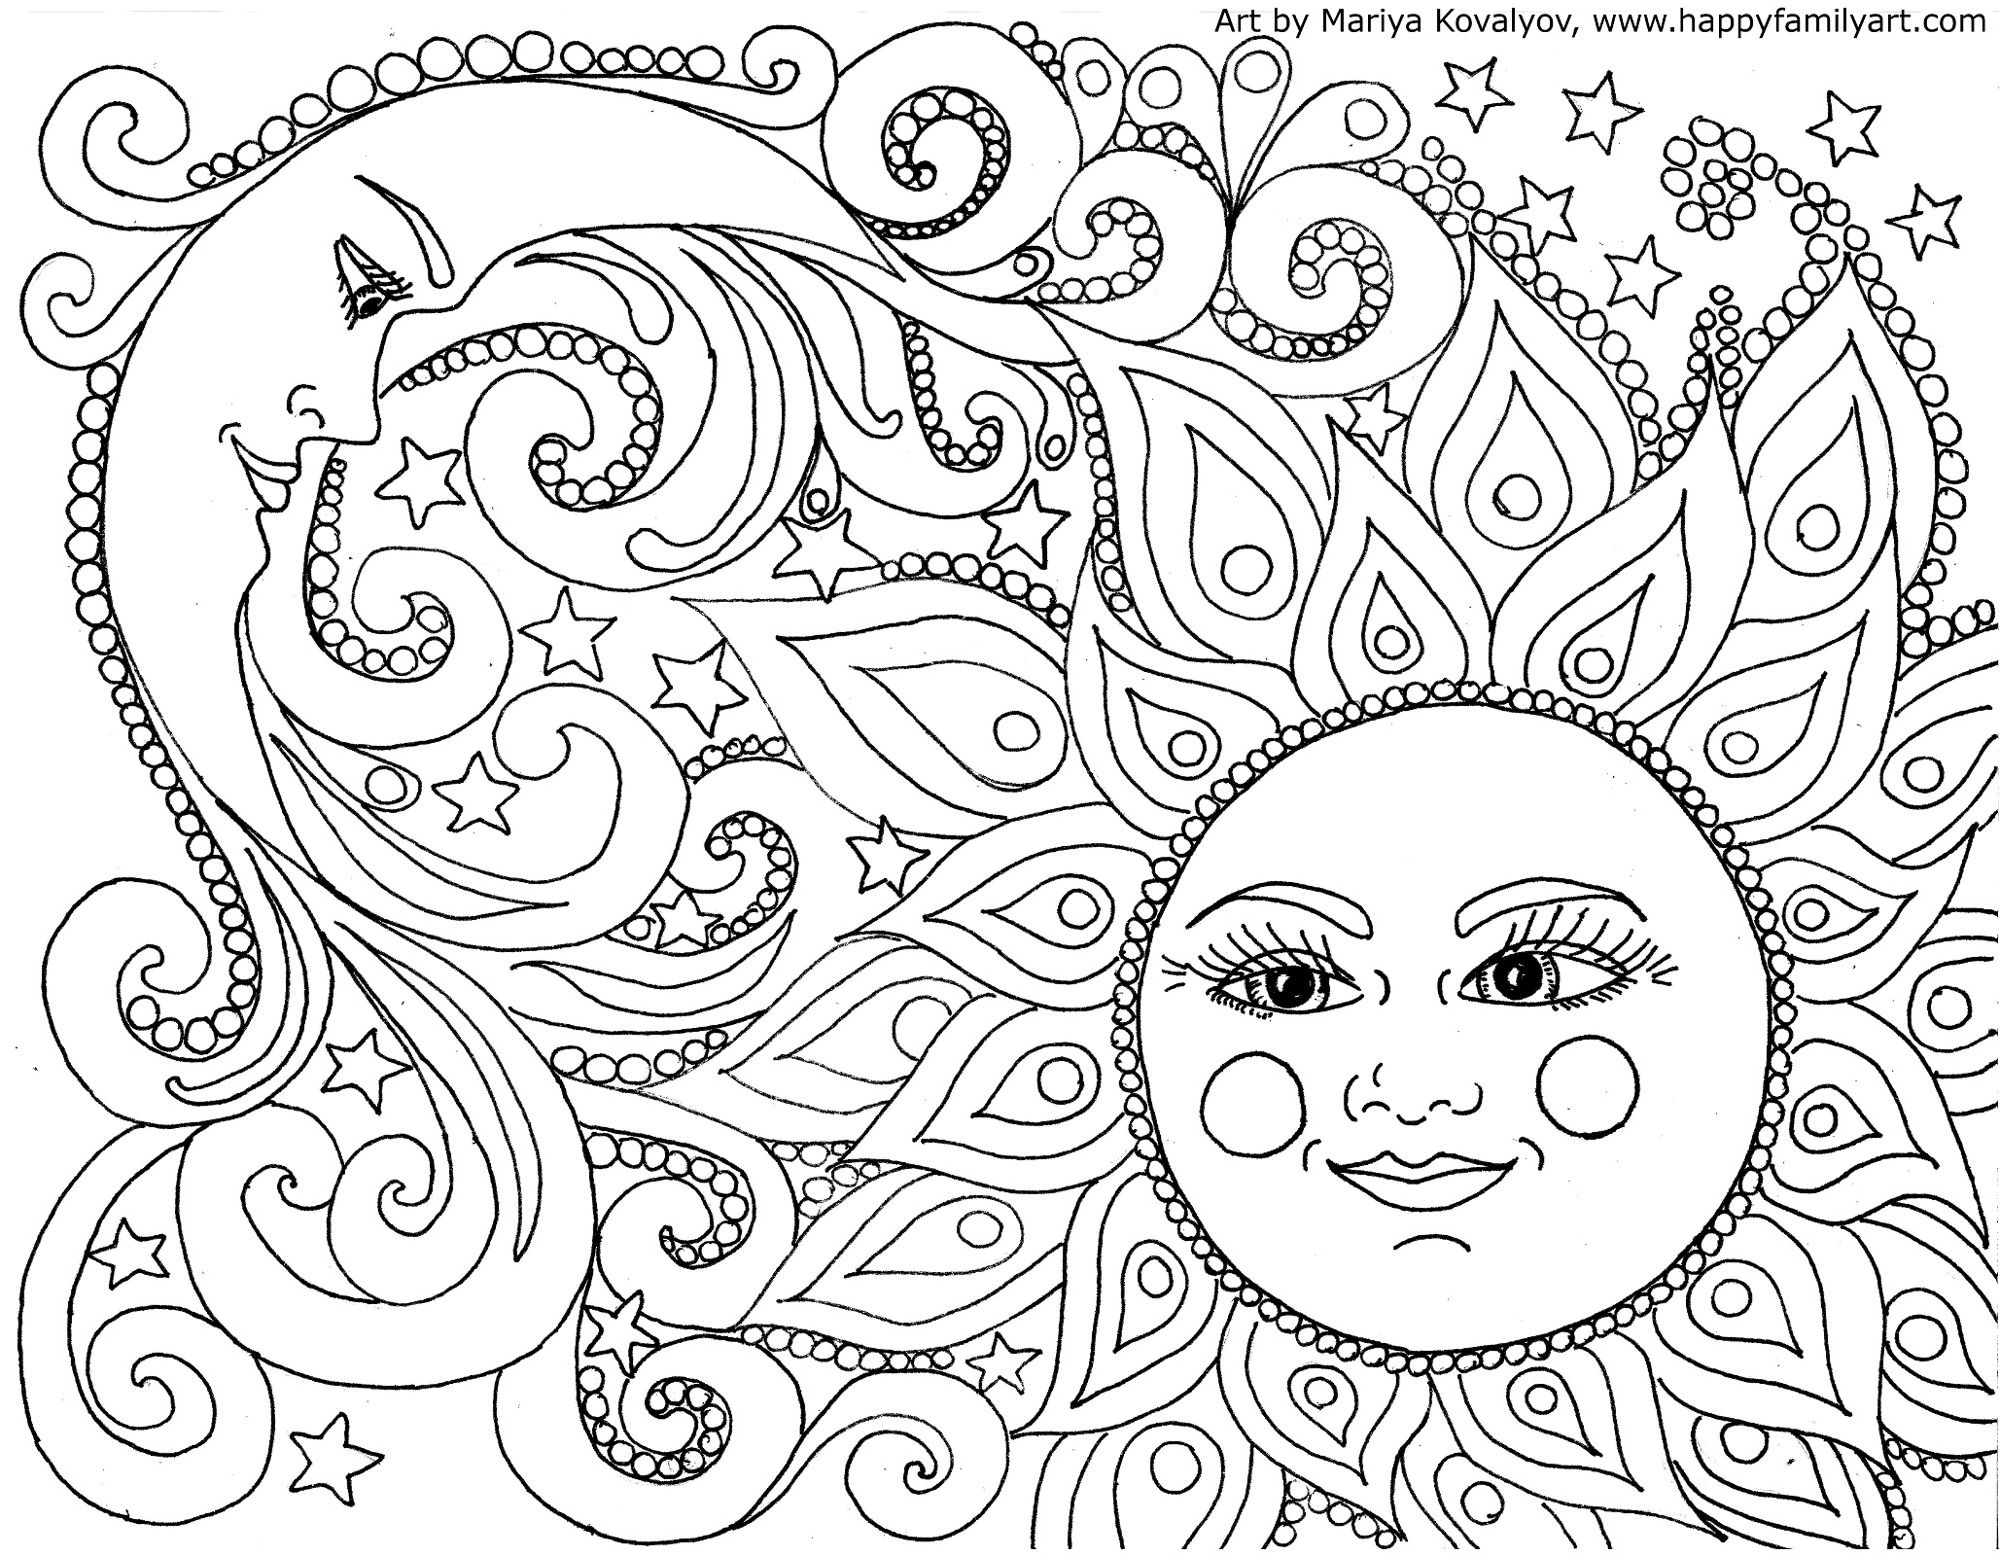 Best photos of t shirt coloring template t shirt drawing - I Made Many Great Fun And Original Coloring Pages Color Your Heart Out